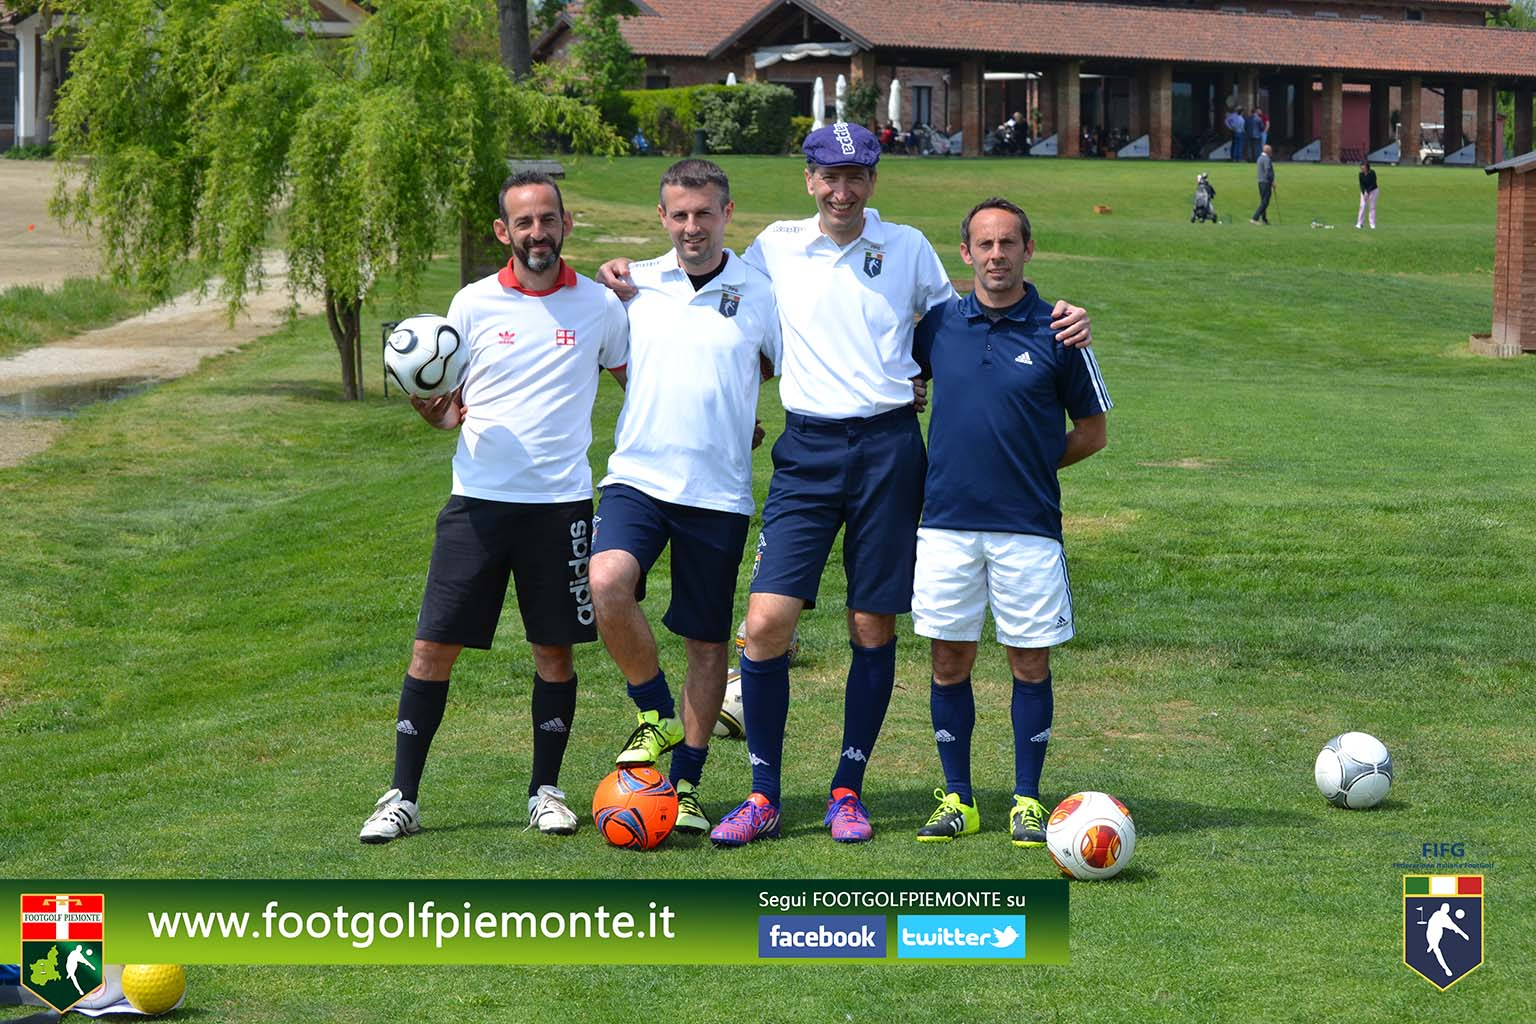 FOTO 9 Regions' Cup Footgolf Piemonte 2016 Golf Città di Asti (At) 30apr16-92